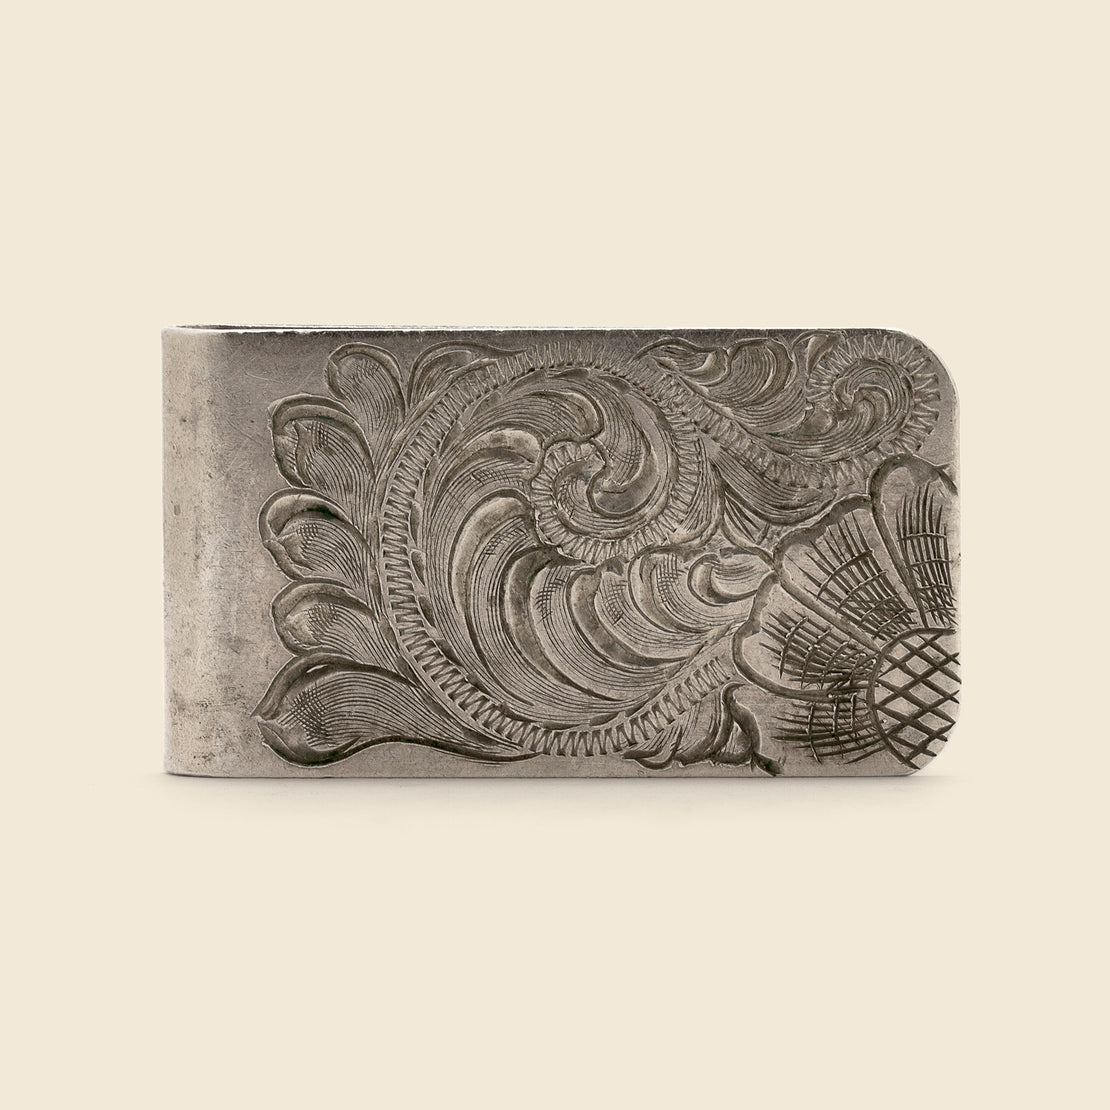 Vintage Paisley Etched Money Clip - Silver